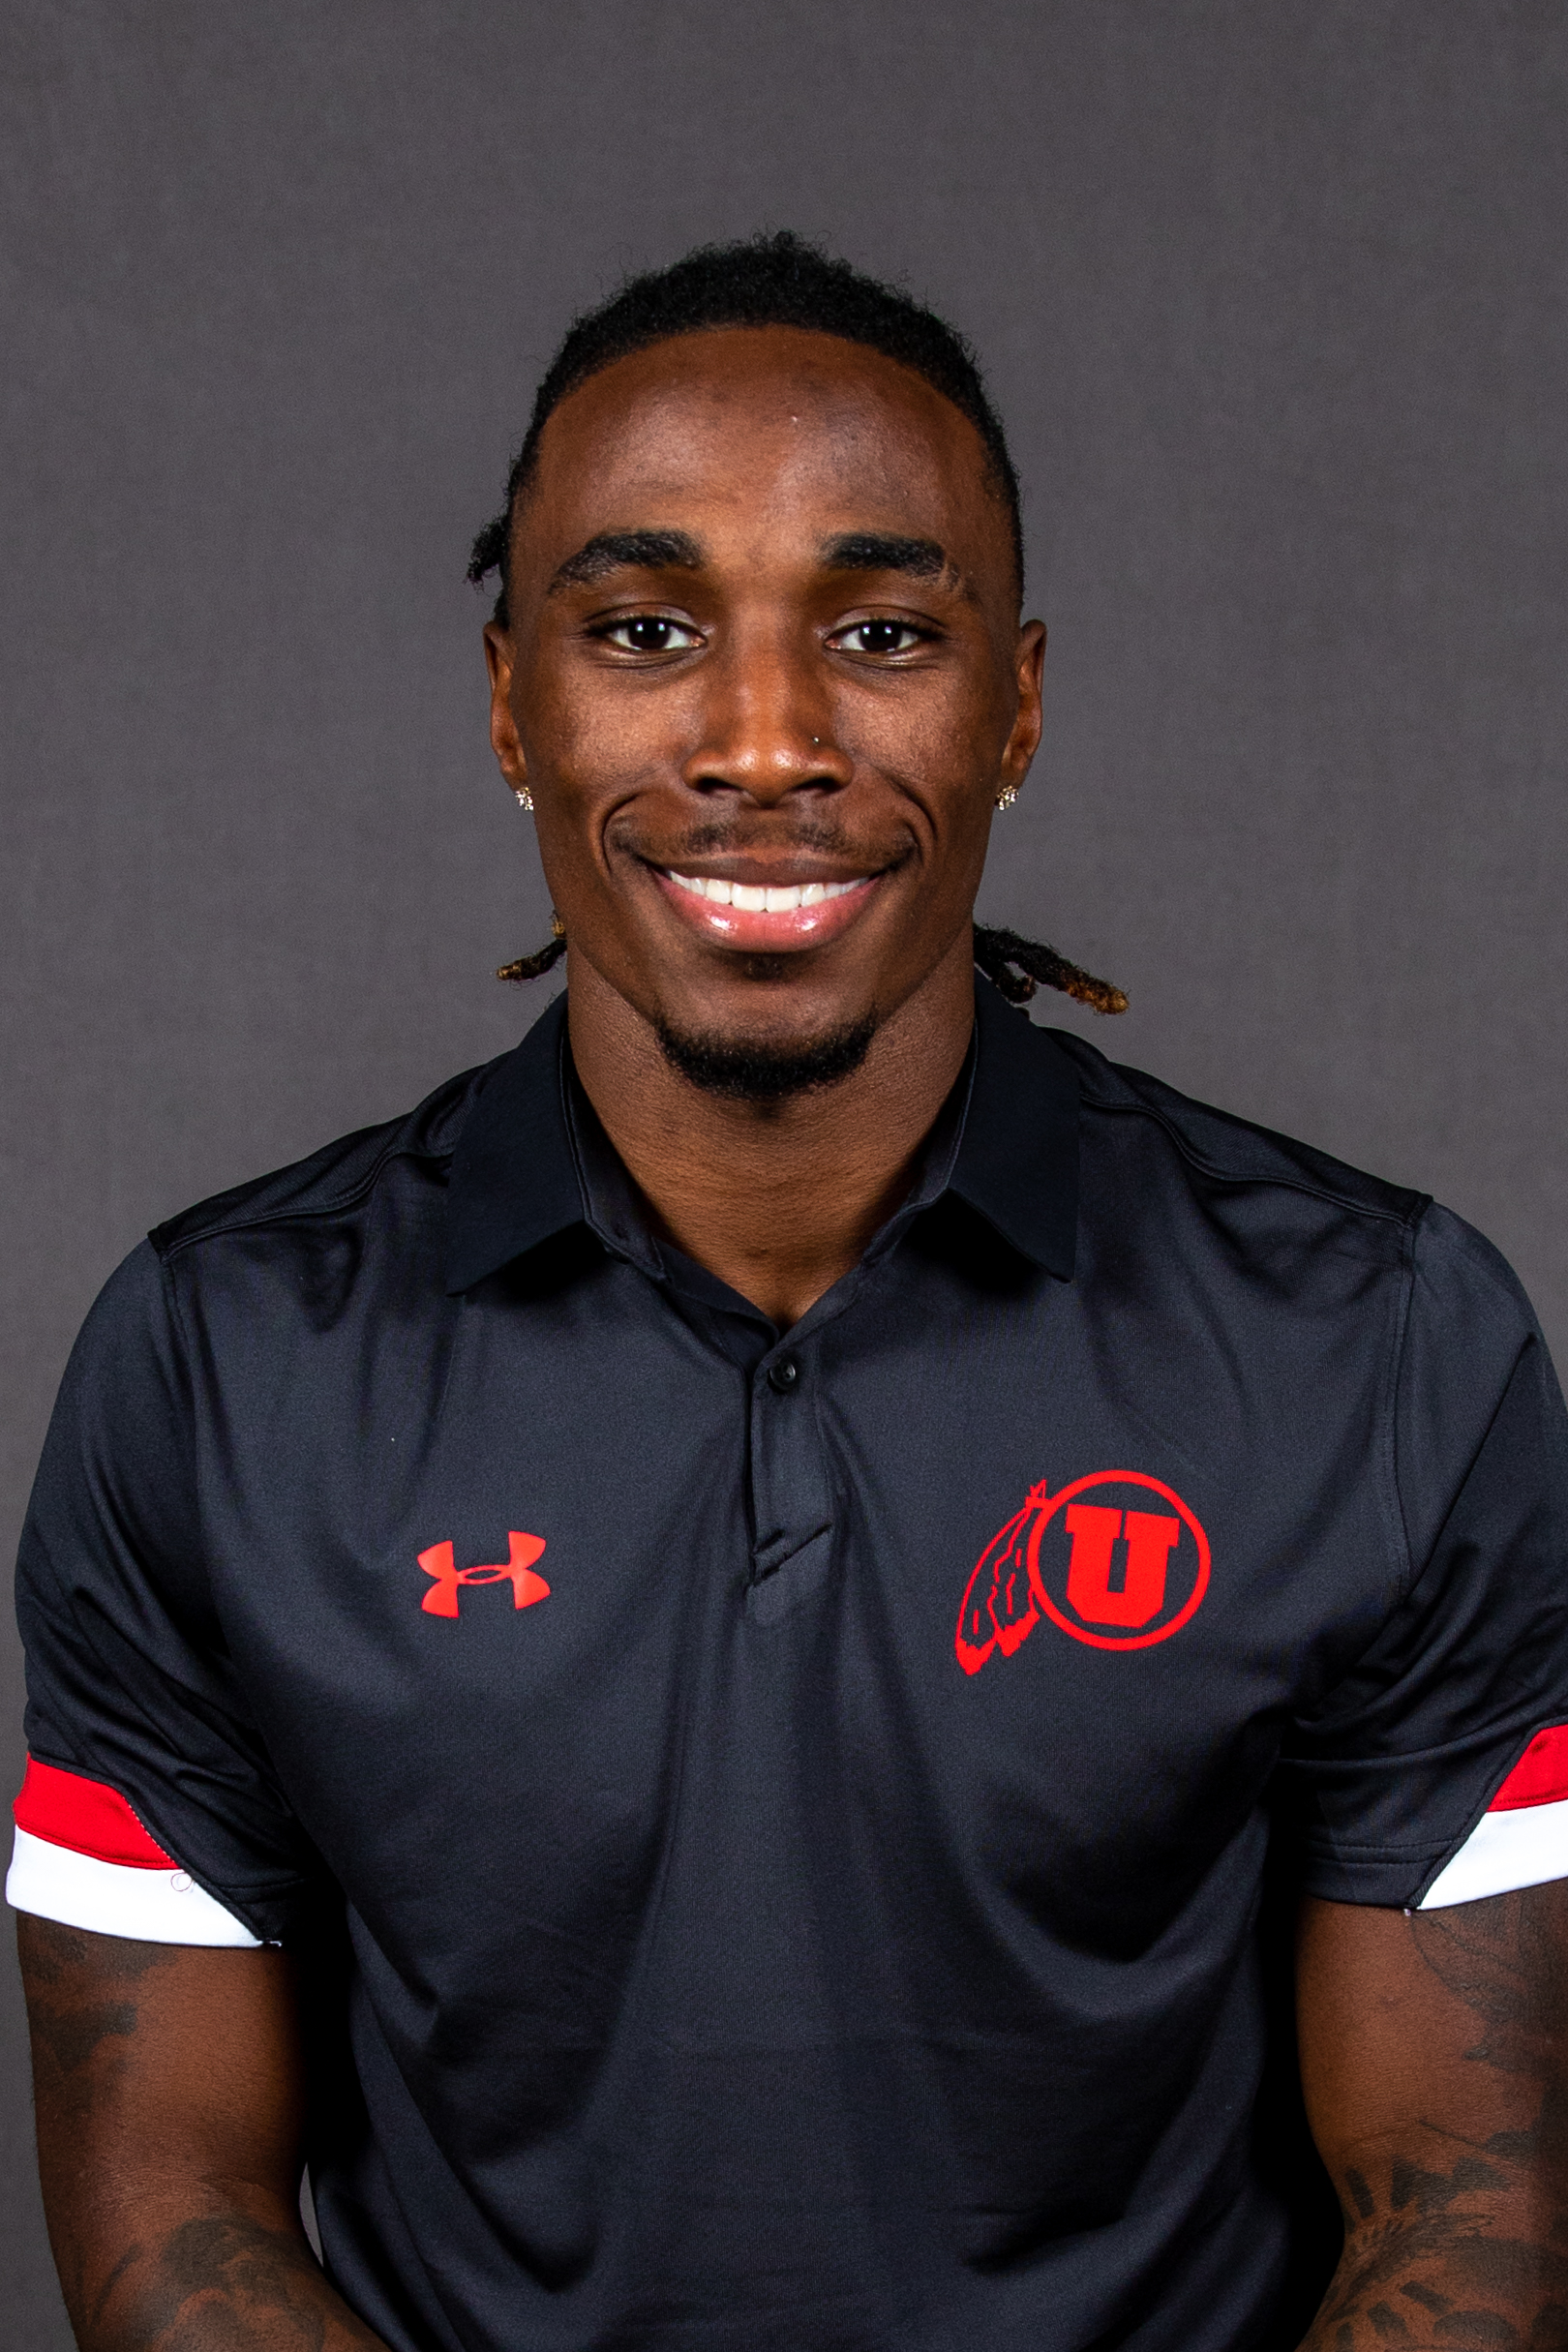 Utah defensive back Aaron Lowe was fatally shot in the early hours Sept. 26, 2021, while attending house party in Salt Lake.